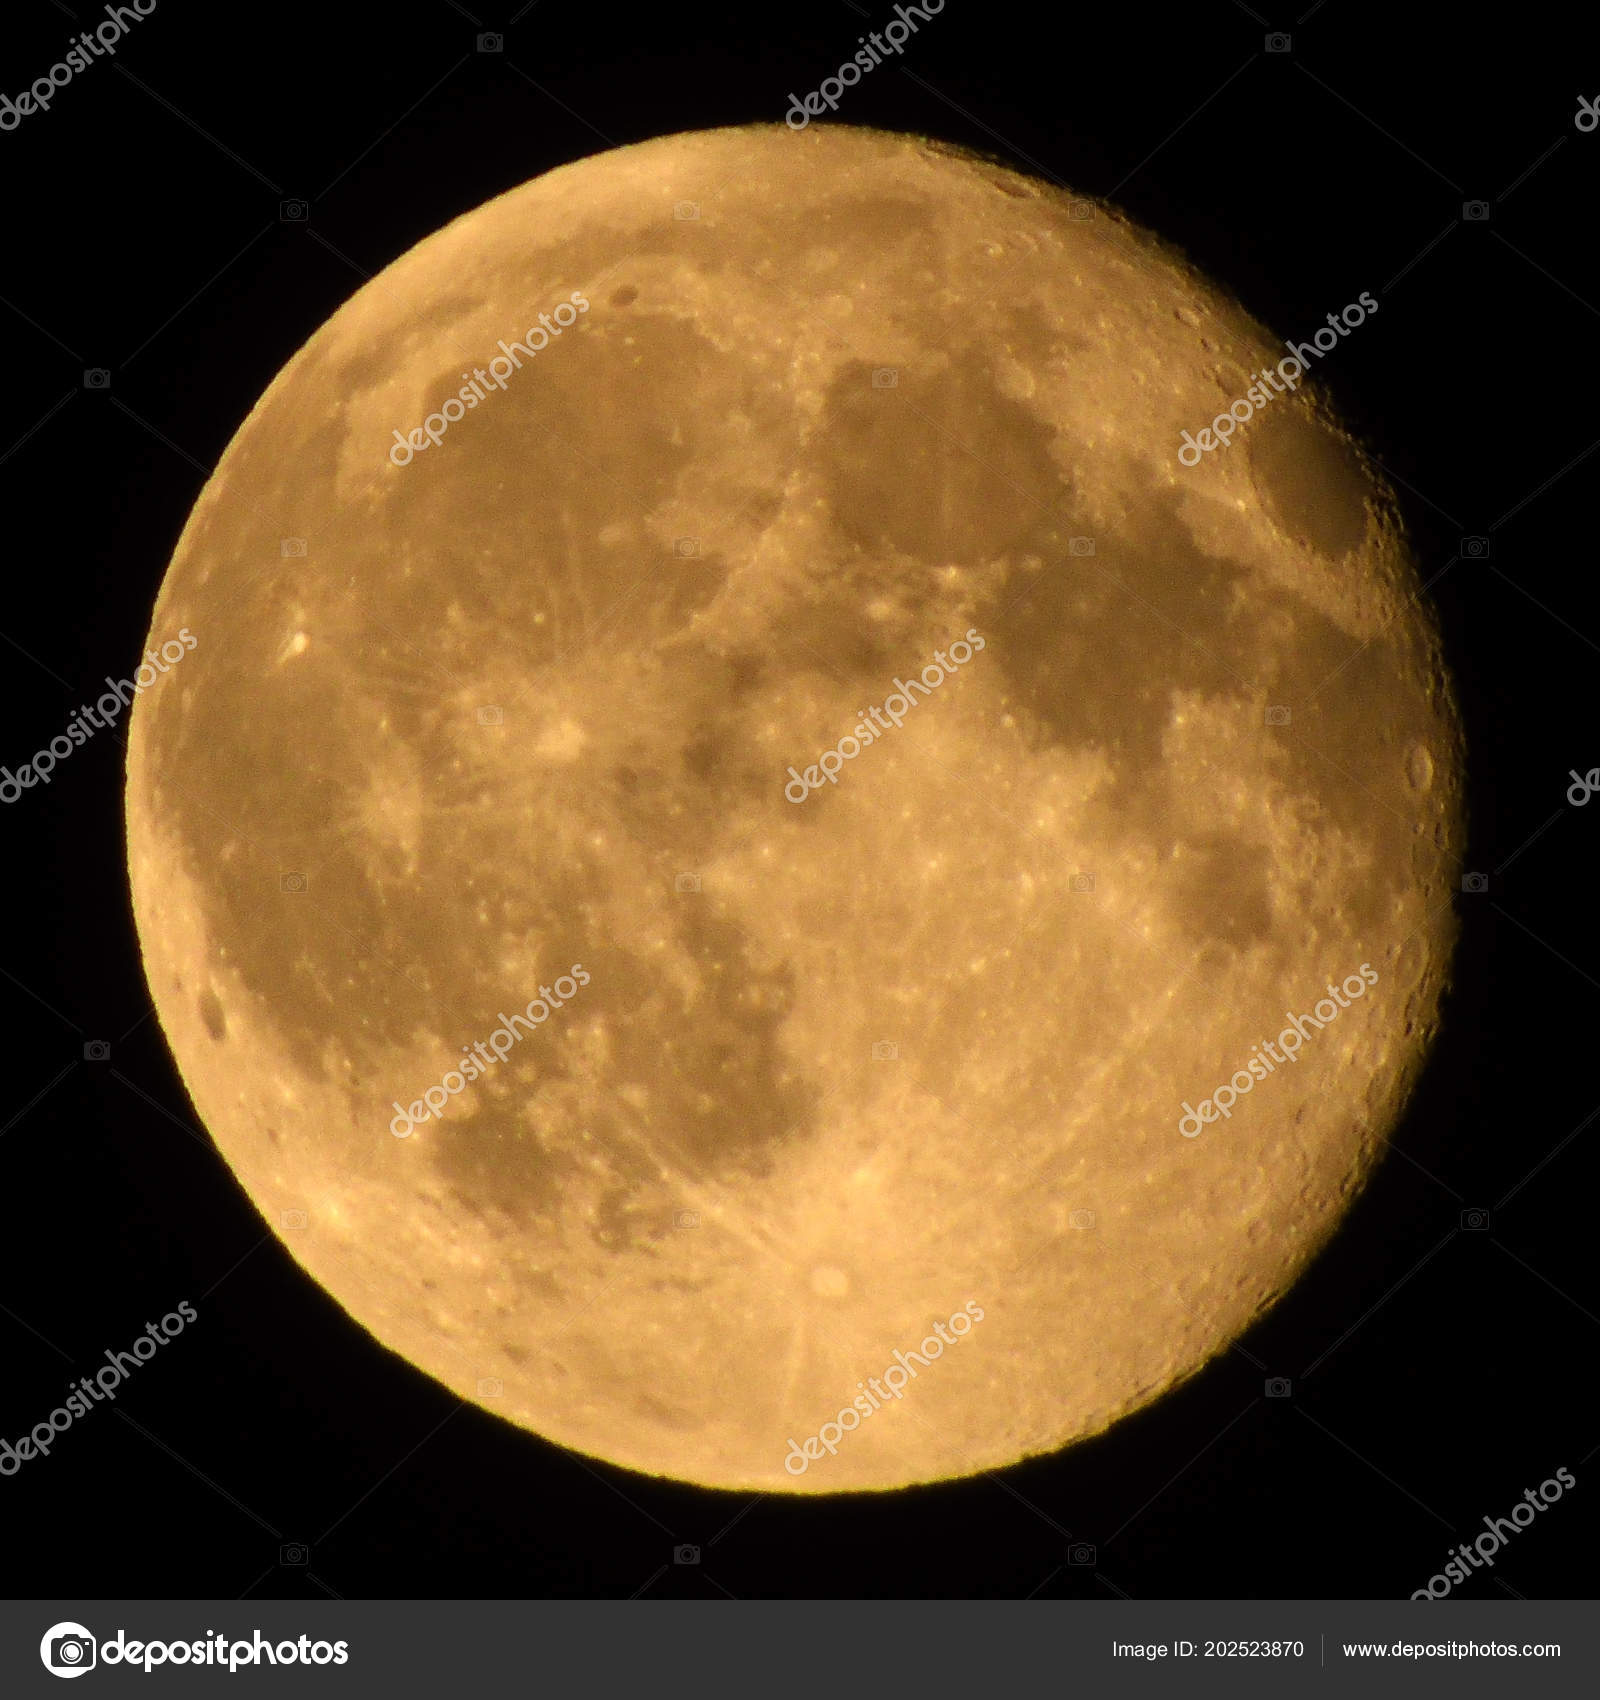 Waning Gibbous Moon Full June 2018 Days Old Stock Photo